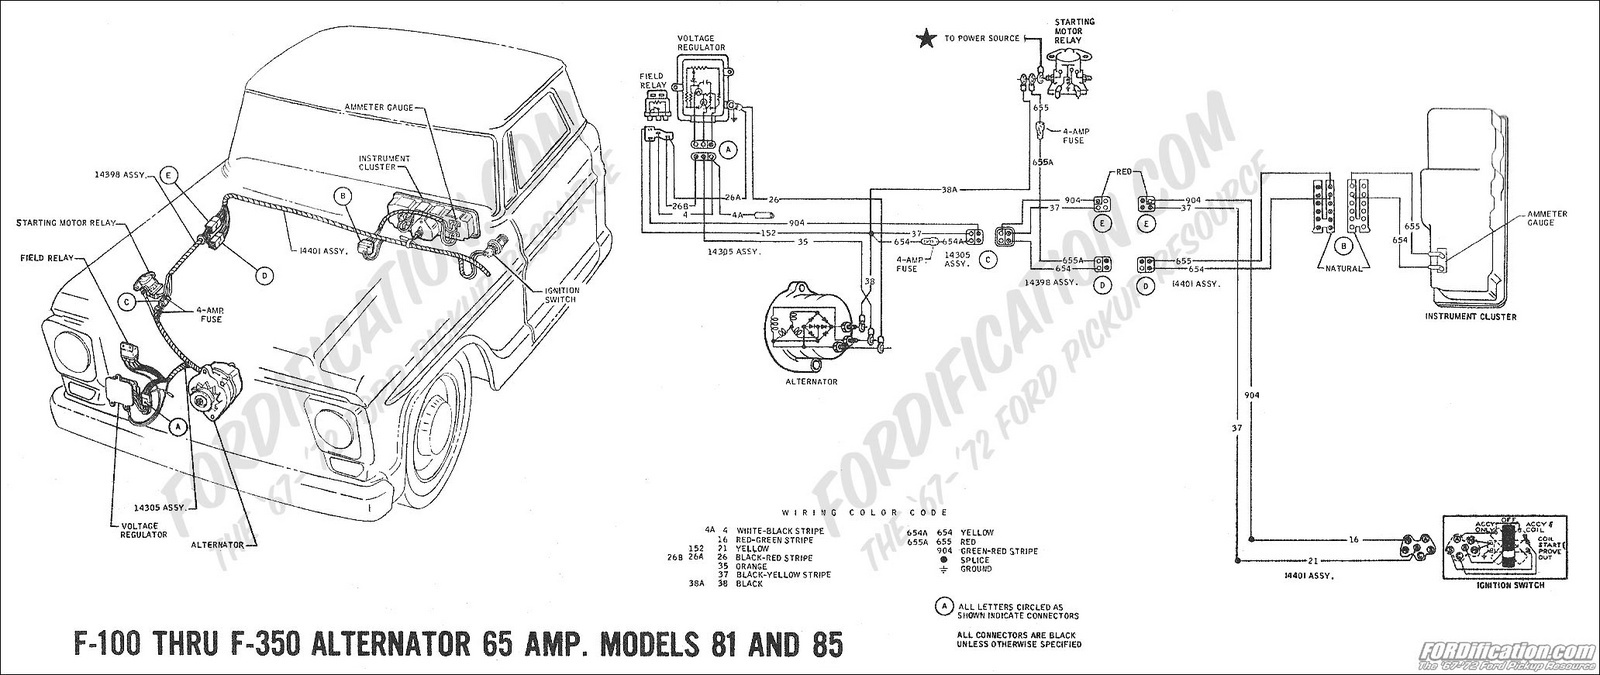 85 ford alternator wiring diagram with Discussion C13911 Ds652668 on 84 Nissan 720 Ignition Wiring Diagram further 86 Buick Regal Wire Harness Diagram besides 1155853 Wiring 101 A additionally 280973848173 also 1974 Ford F 250 4x4 Wiring Diagram.